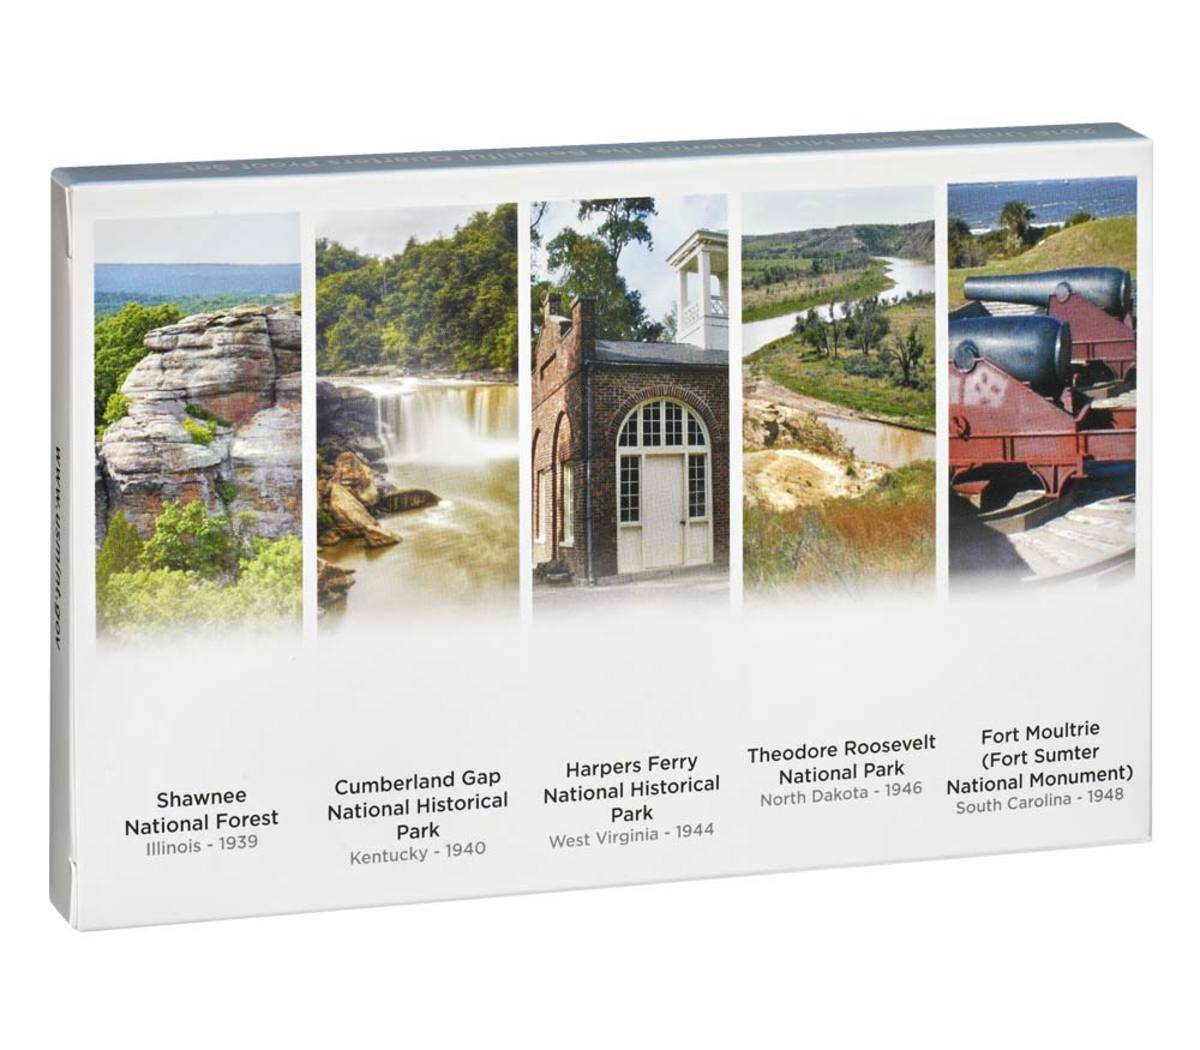 The Mint says an incorrect image was used for the Cumberland Gap National Historic Park on the 2016 America the Beautiful Quarters Proof Set packaging.